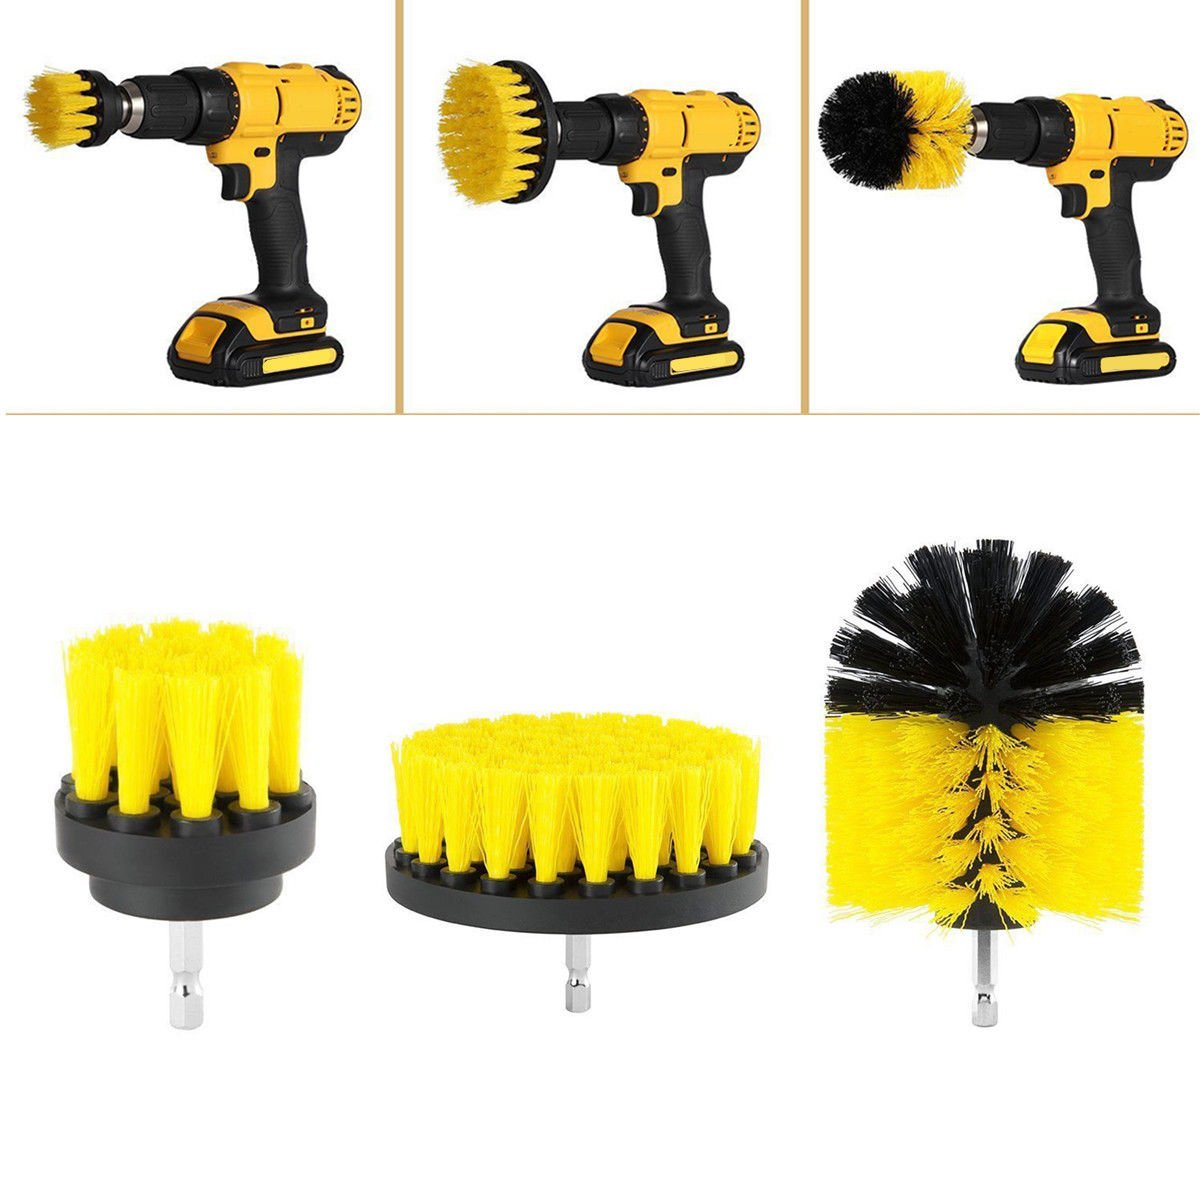 Delaman Drill Brush Brush Attachment Drill Rotary Electronic Cleaning Brush for Bathroom, Car, Floor, Kitchen, 3 Pieces, Yellow